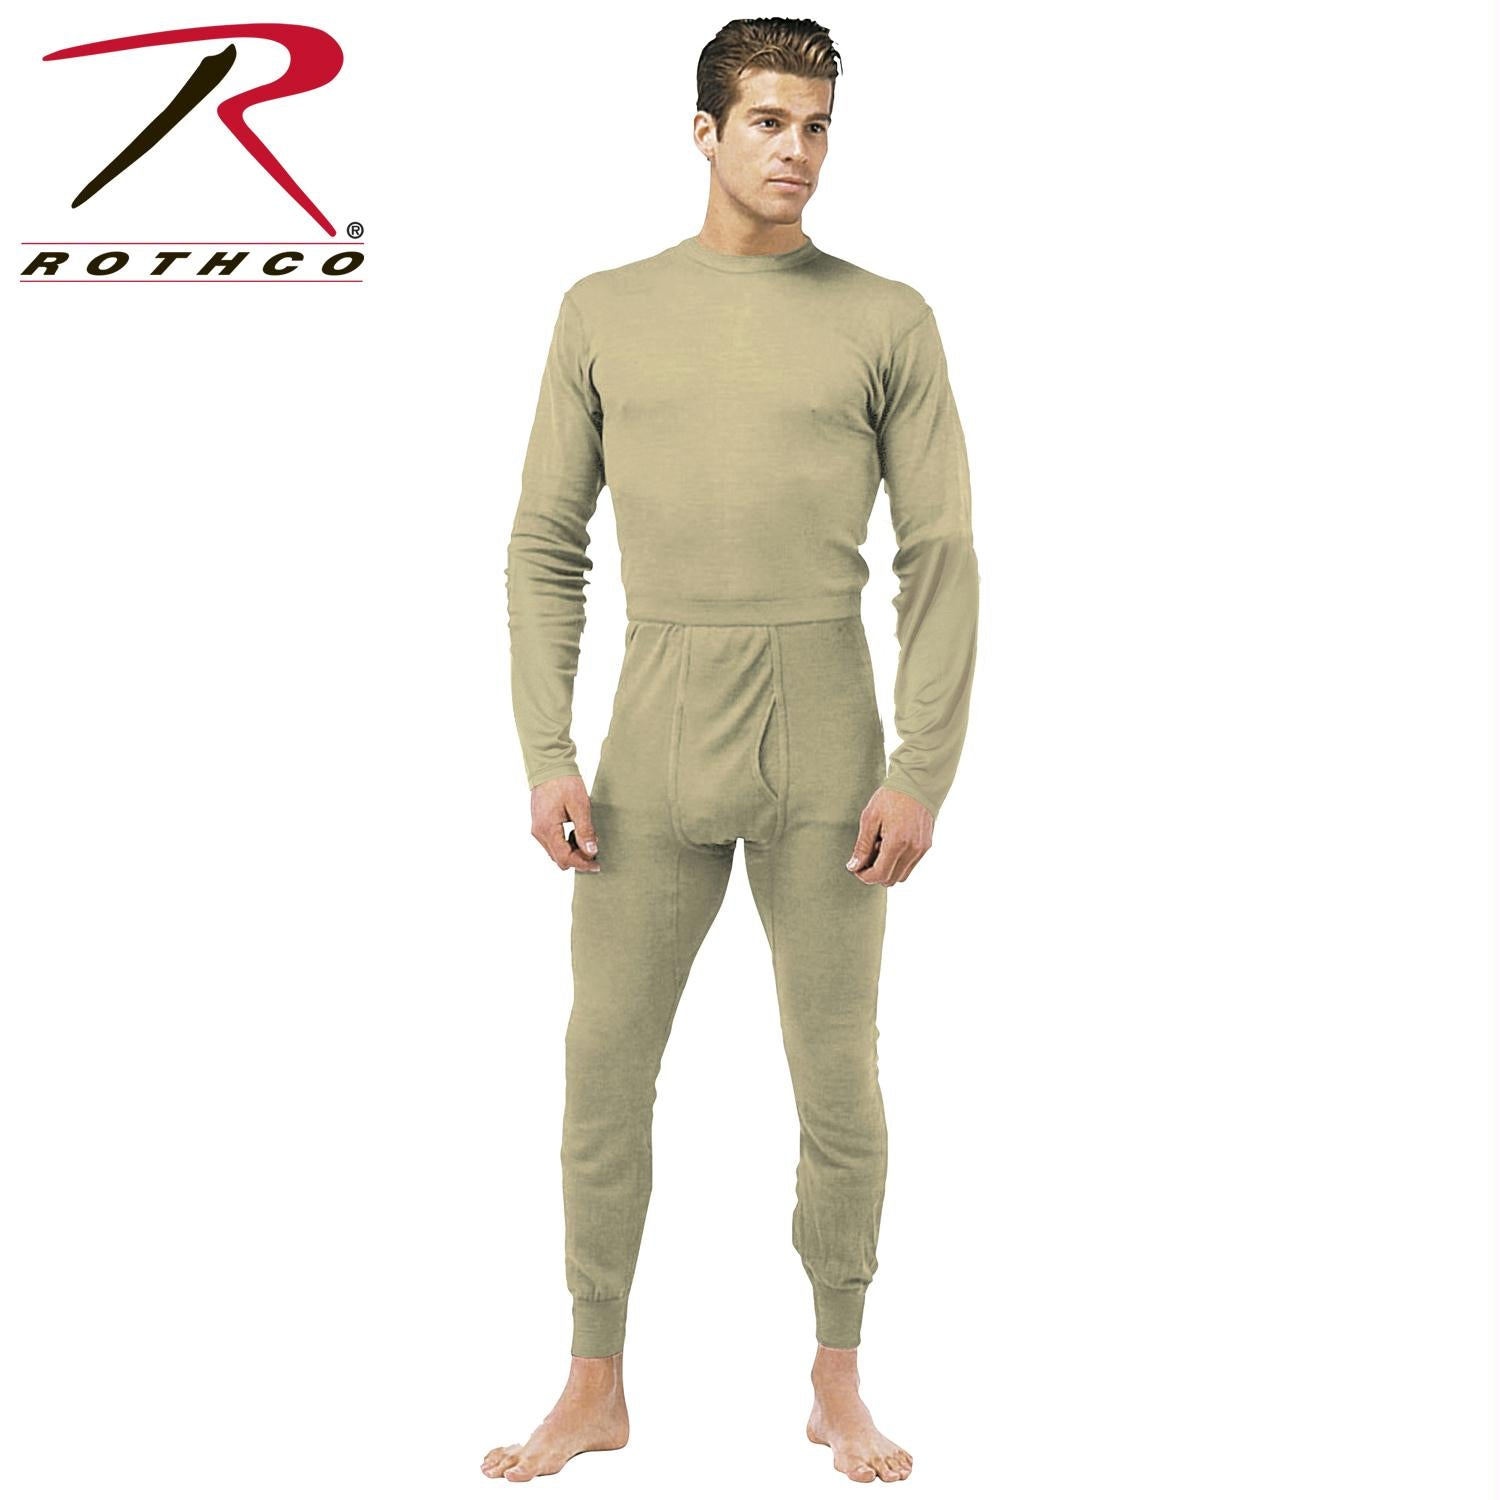 Rothco Gen III Silk Weight Underwear Top - Desert Sand / M